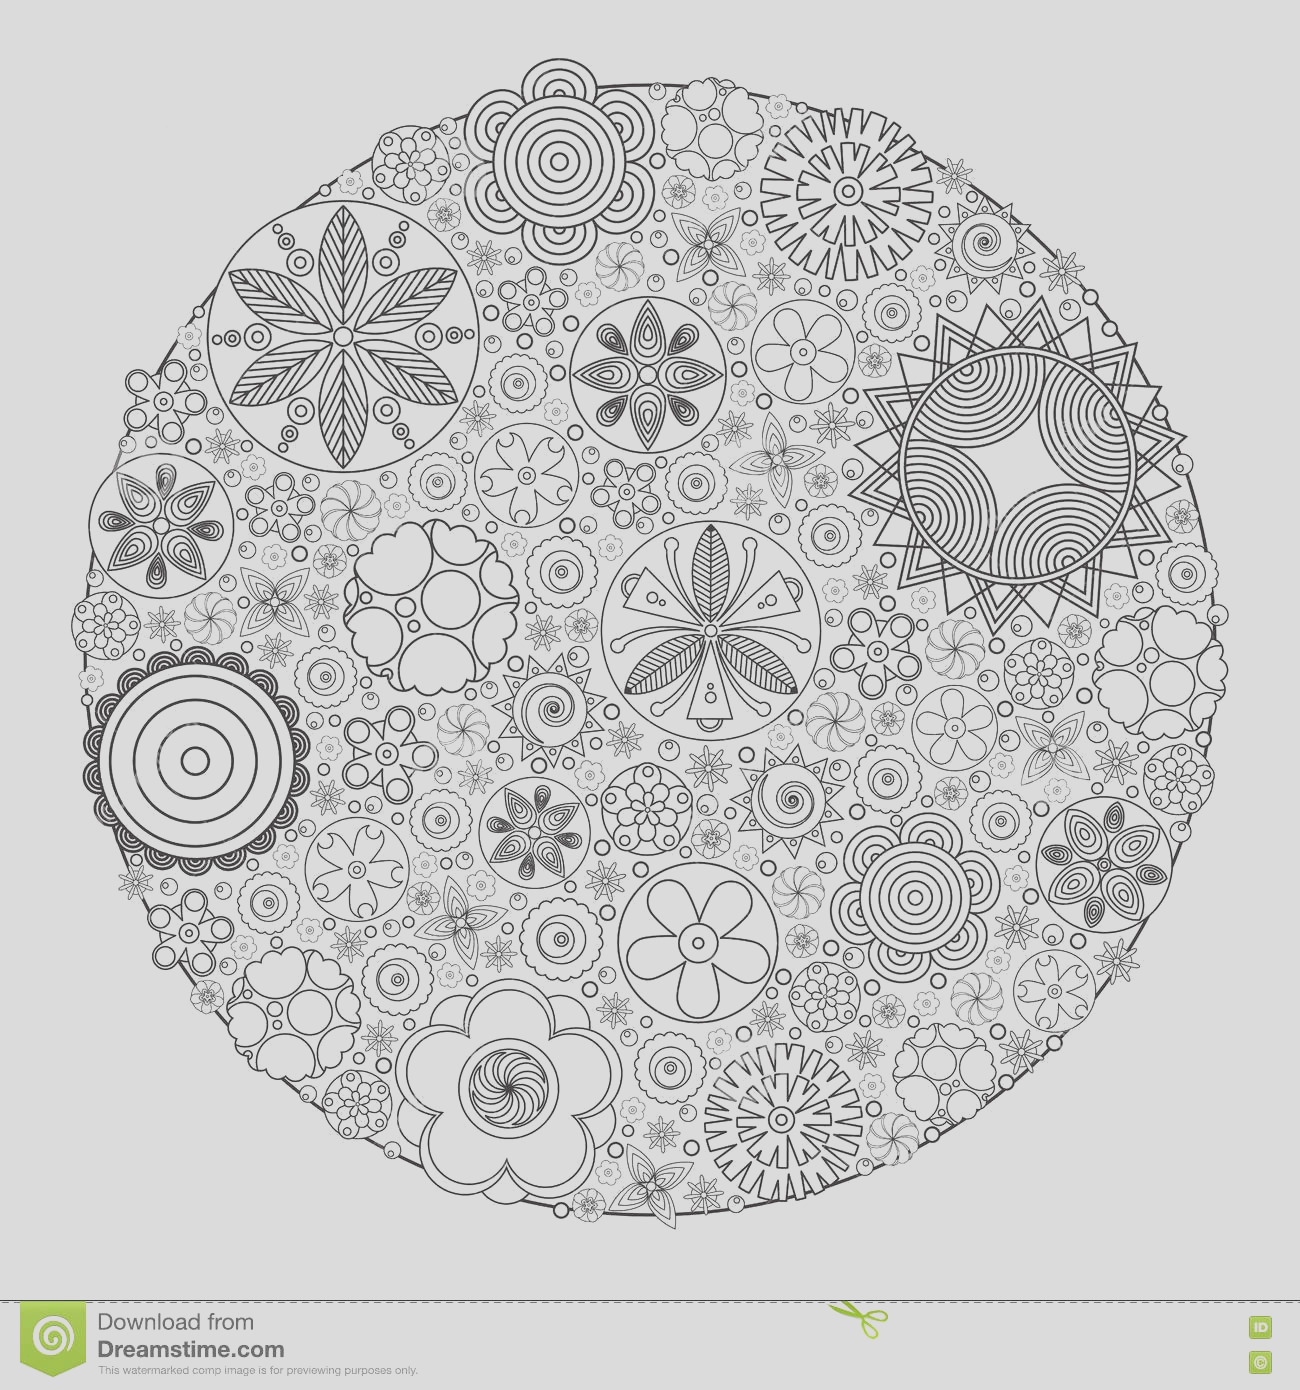 stock illustration vector monochrome floral decorative pattern coloring book grown up adult imitation hand drawing flower ethnic retro image